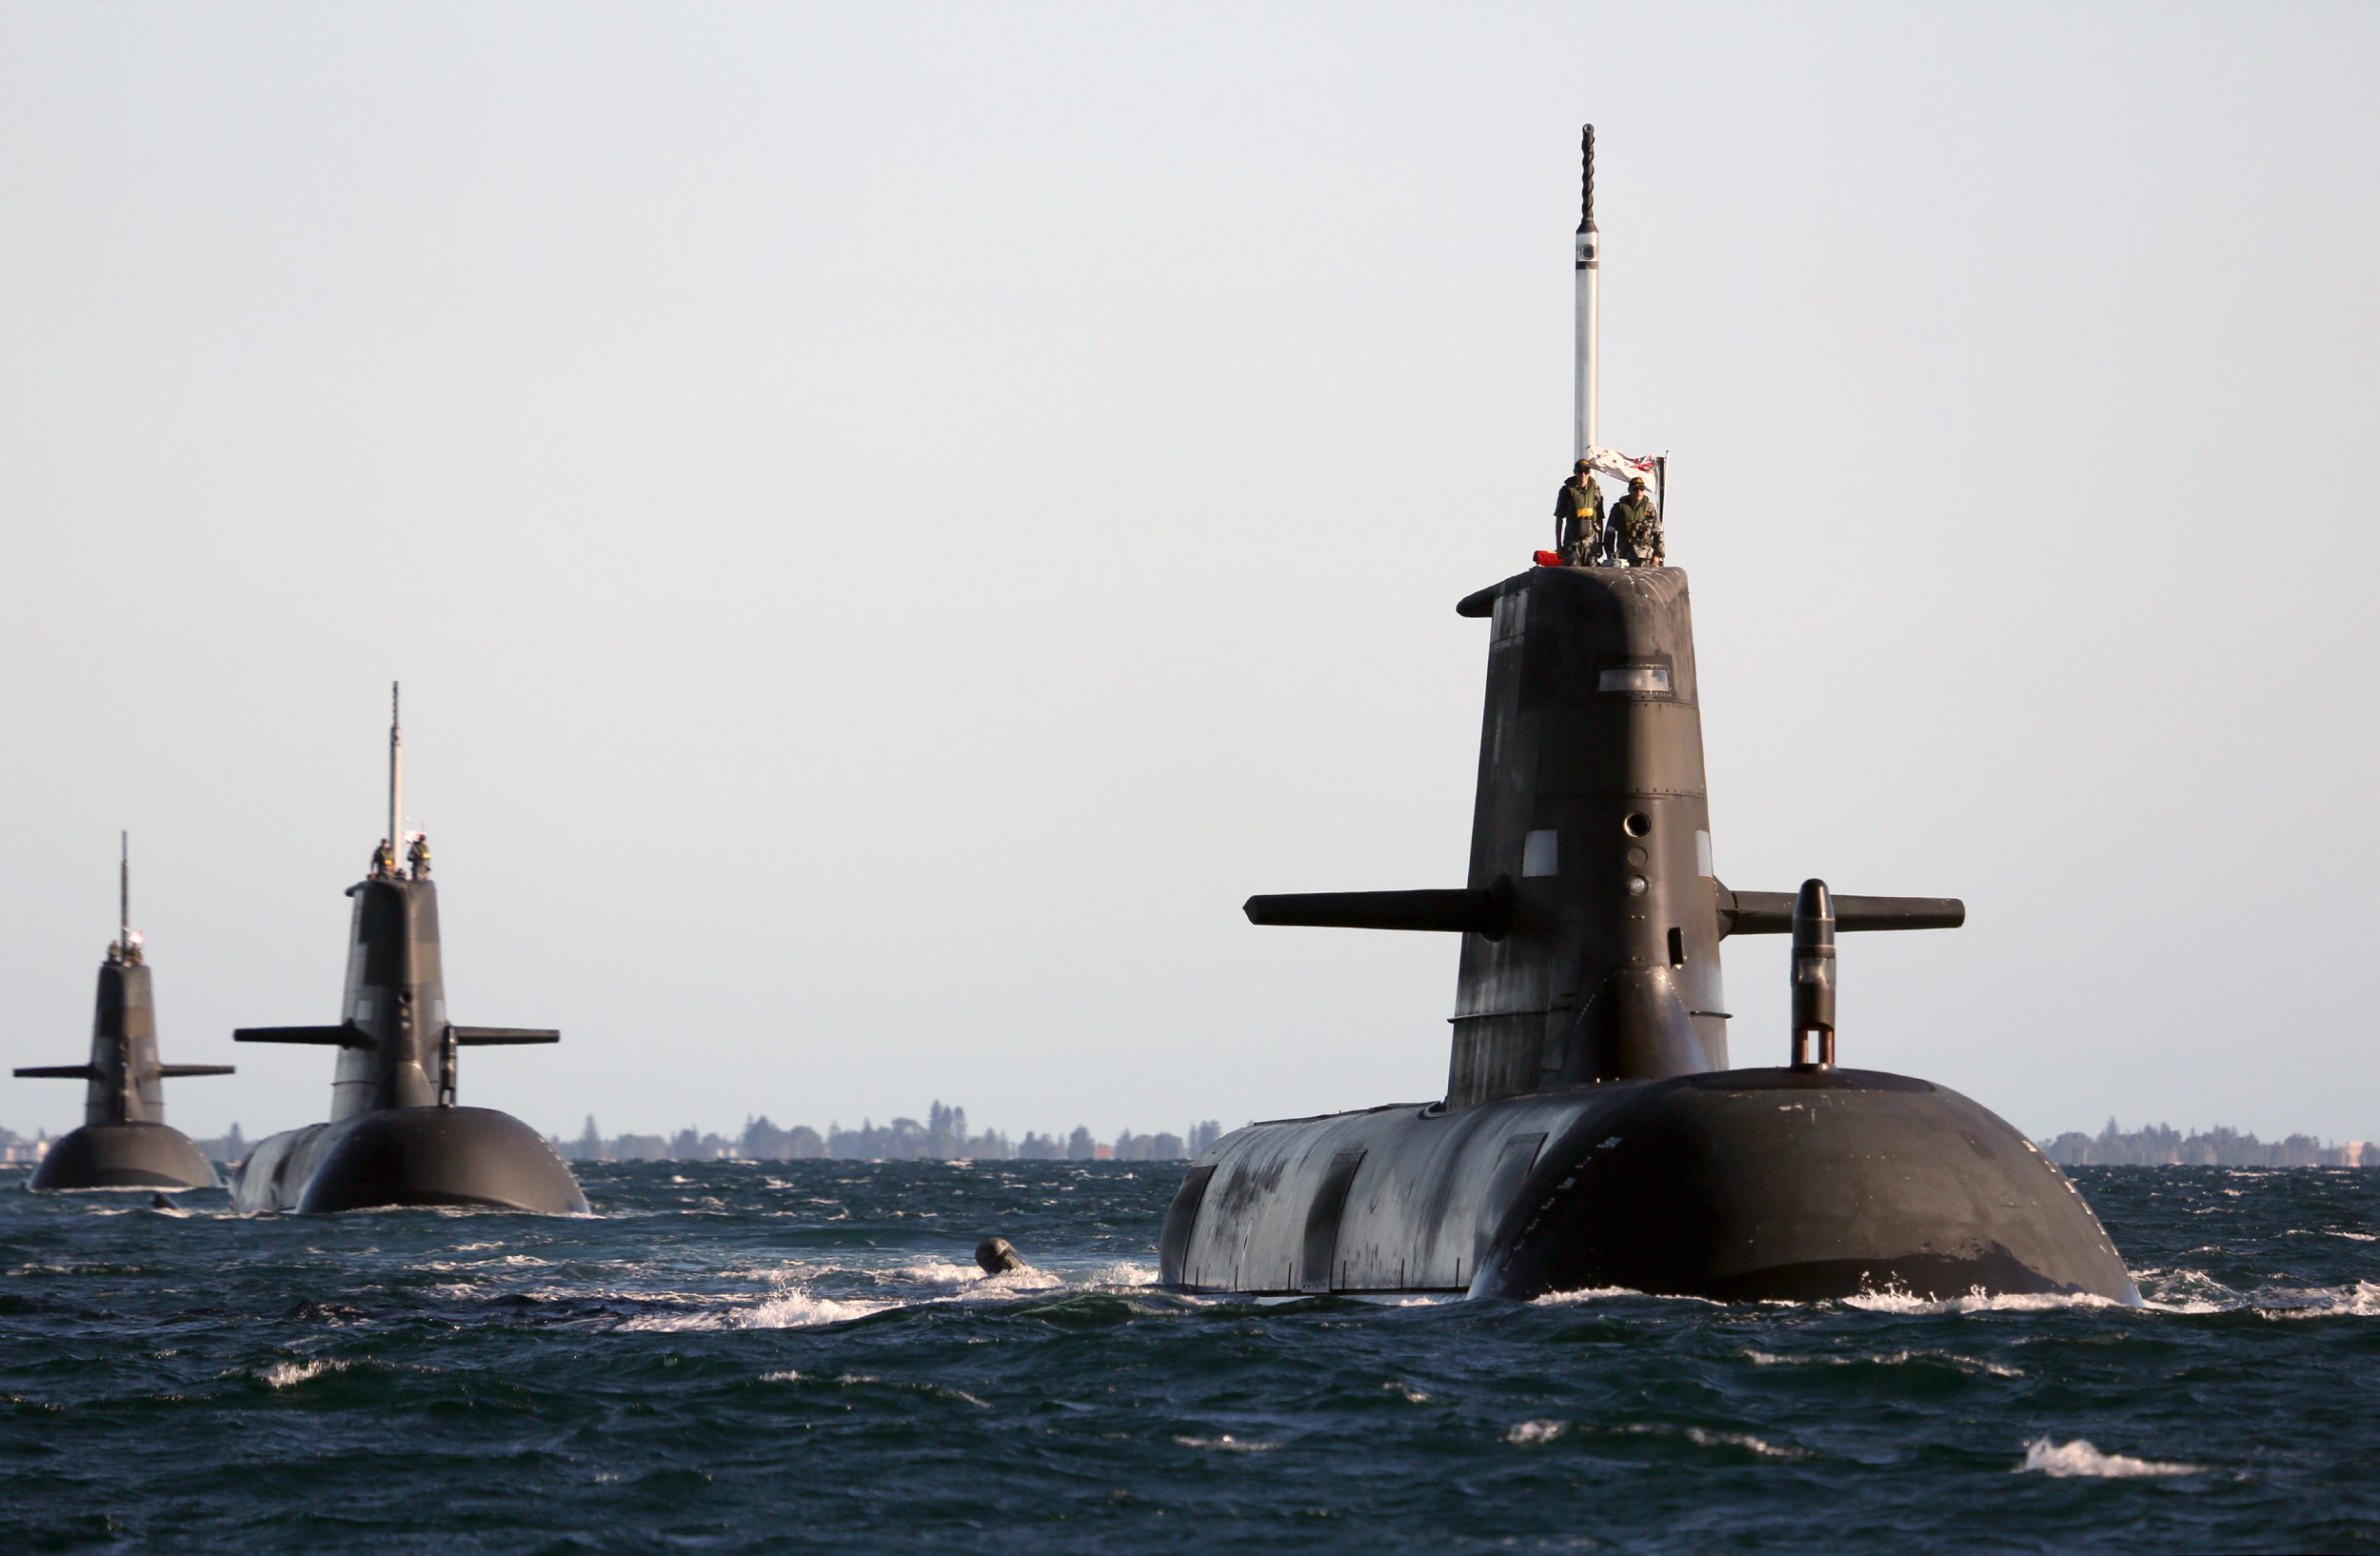 HMAS Dechaineux leads HMAS Waller and HMAS Sheean in formation. Mid Caption: Cockburn Sound, near Rockingham Western Australia was busier than usual as three submarines on a variety of activities were in close proximity for a short time. HMAS Dechaineux was departing for deployment whilst HMAS Waller, who recently completed a scheduled maintenance period was undertaking post maintenance trials. HMAS Sheean, who has recently returned from Naval exercises on the east coast of Australia, was once again departing to conduct a variety of activities in the WAXA.